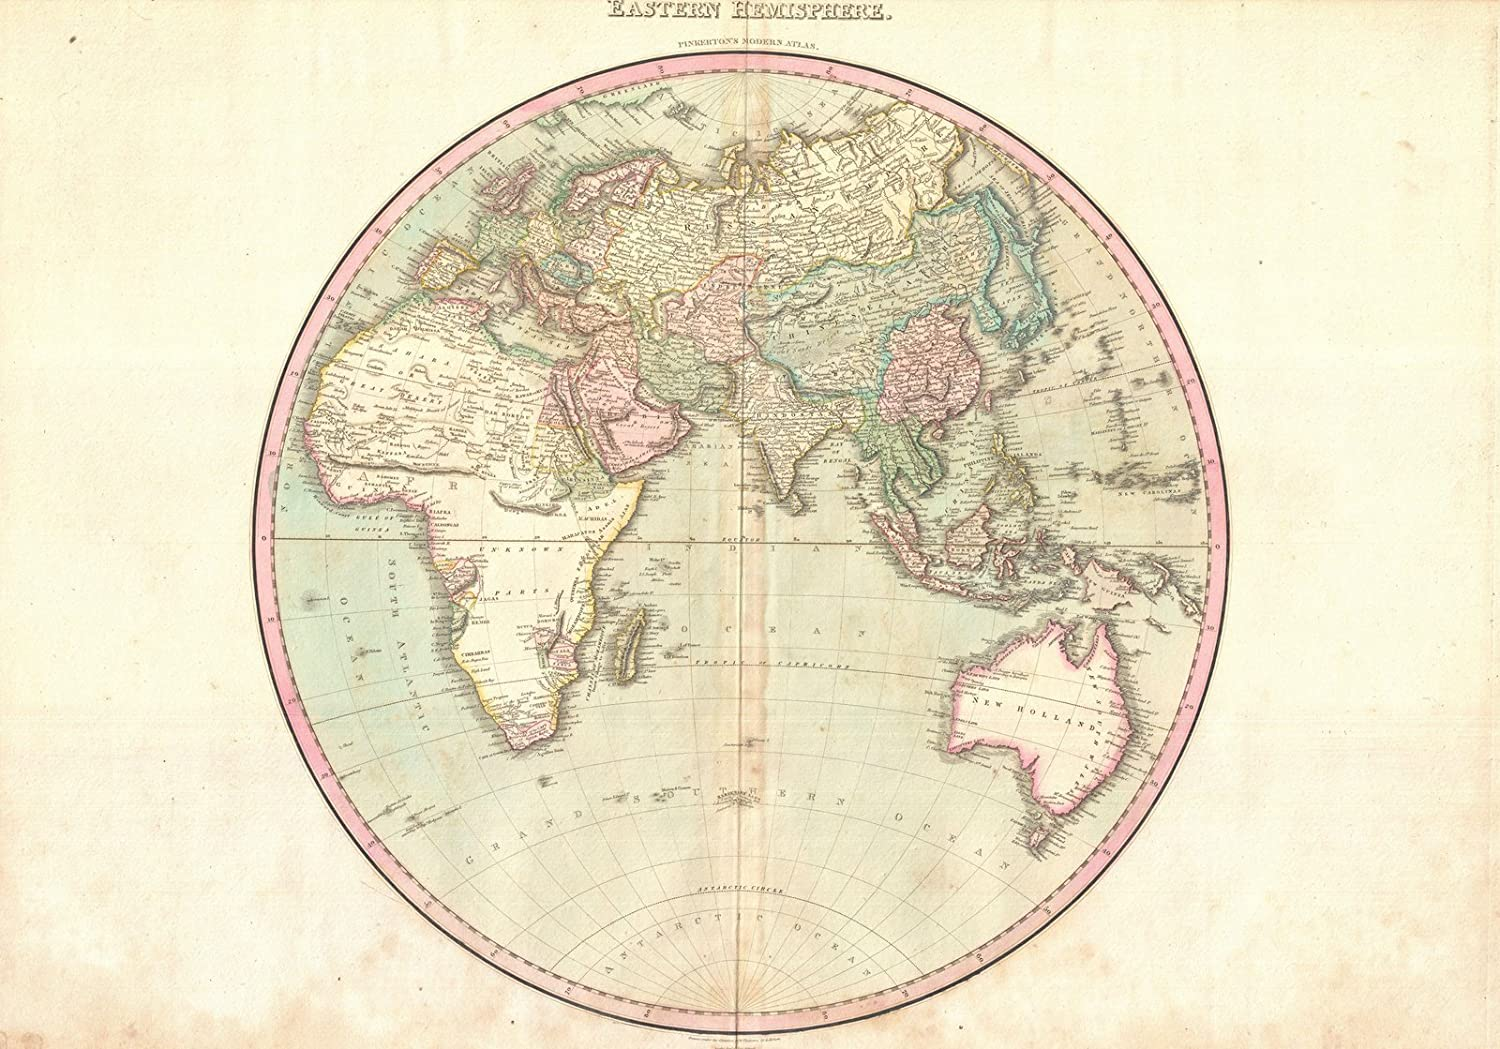 Amazon.com: Historical 1818 Pinkerton Map of The Eastern Hemisphere ...